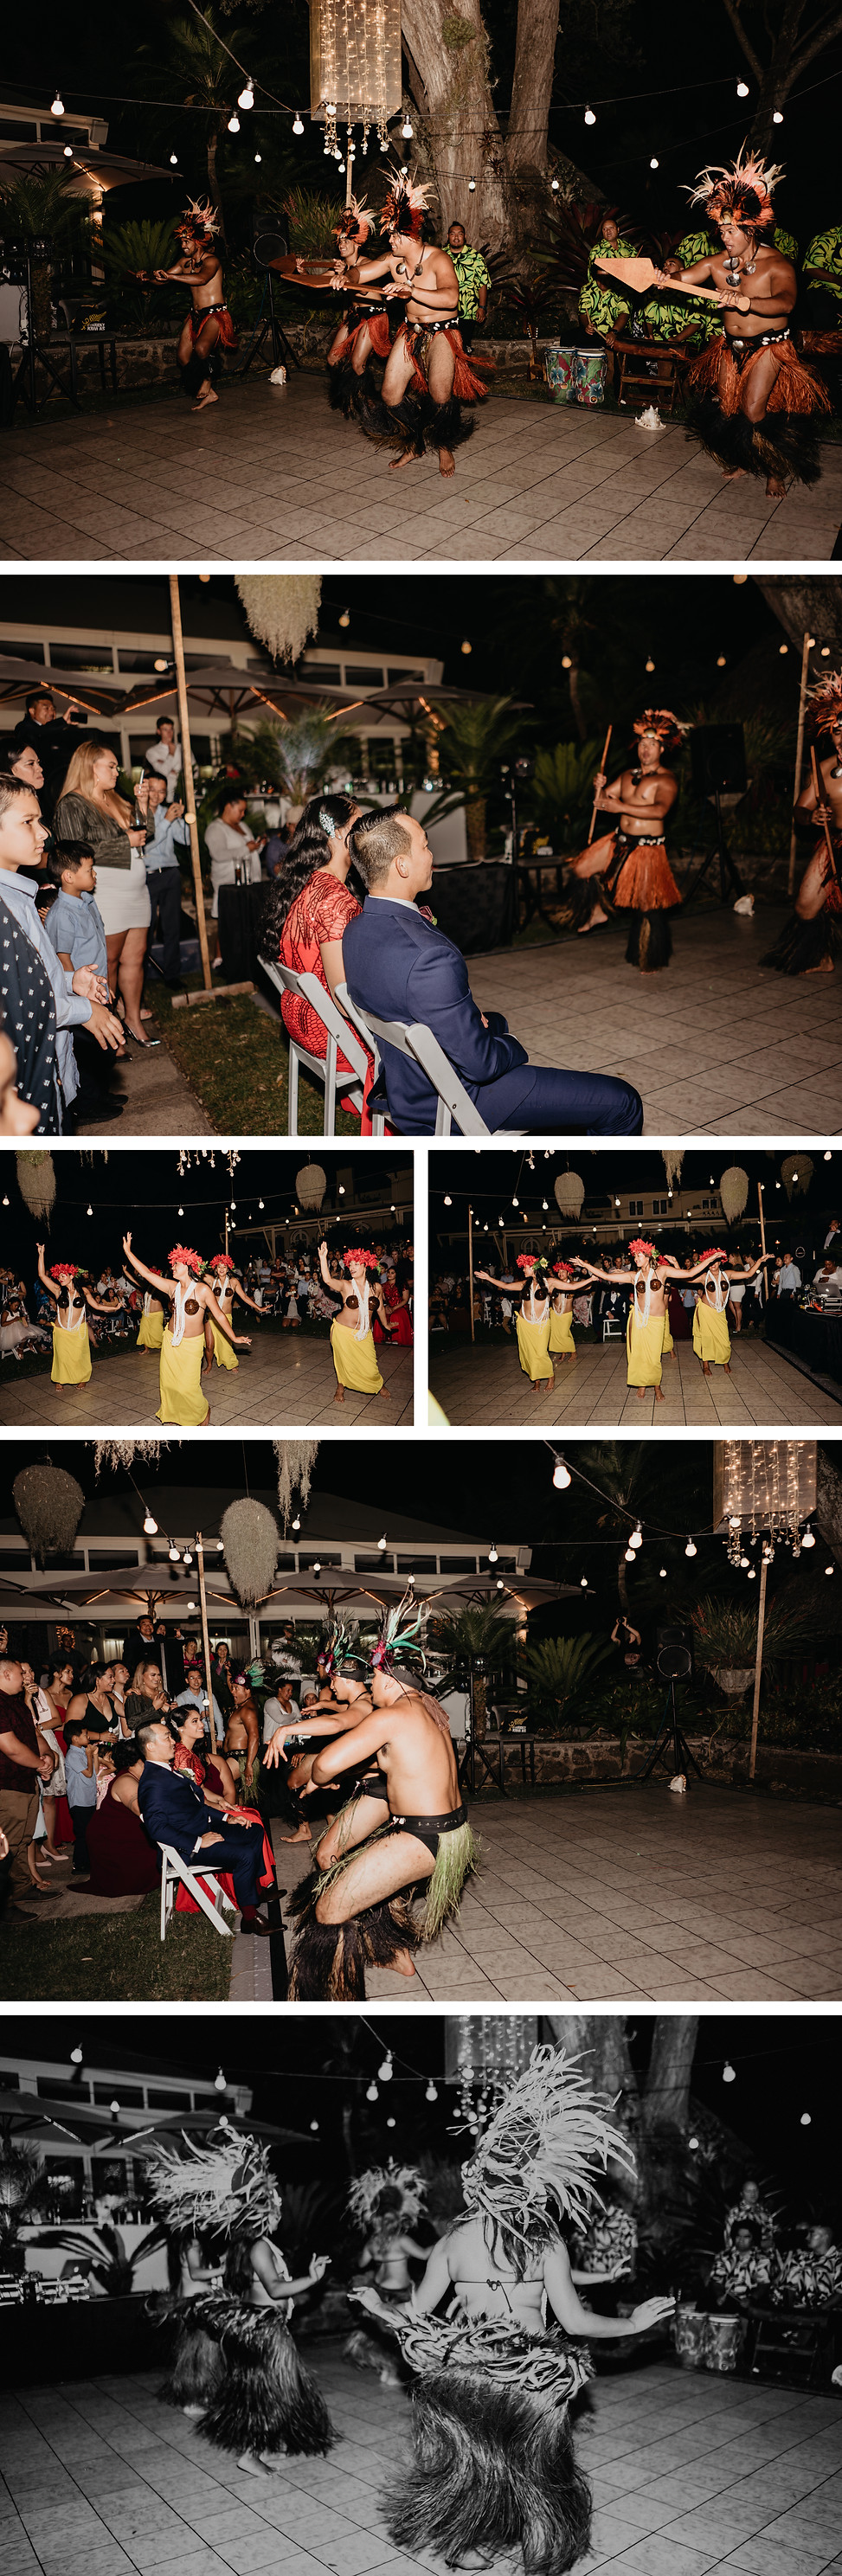 Kelliher Estate in Auckland, New Zealand. Tongan cultural dance group captured by wanderlusting lovers